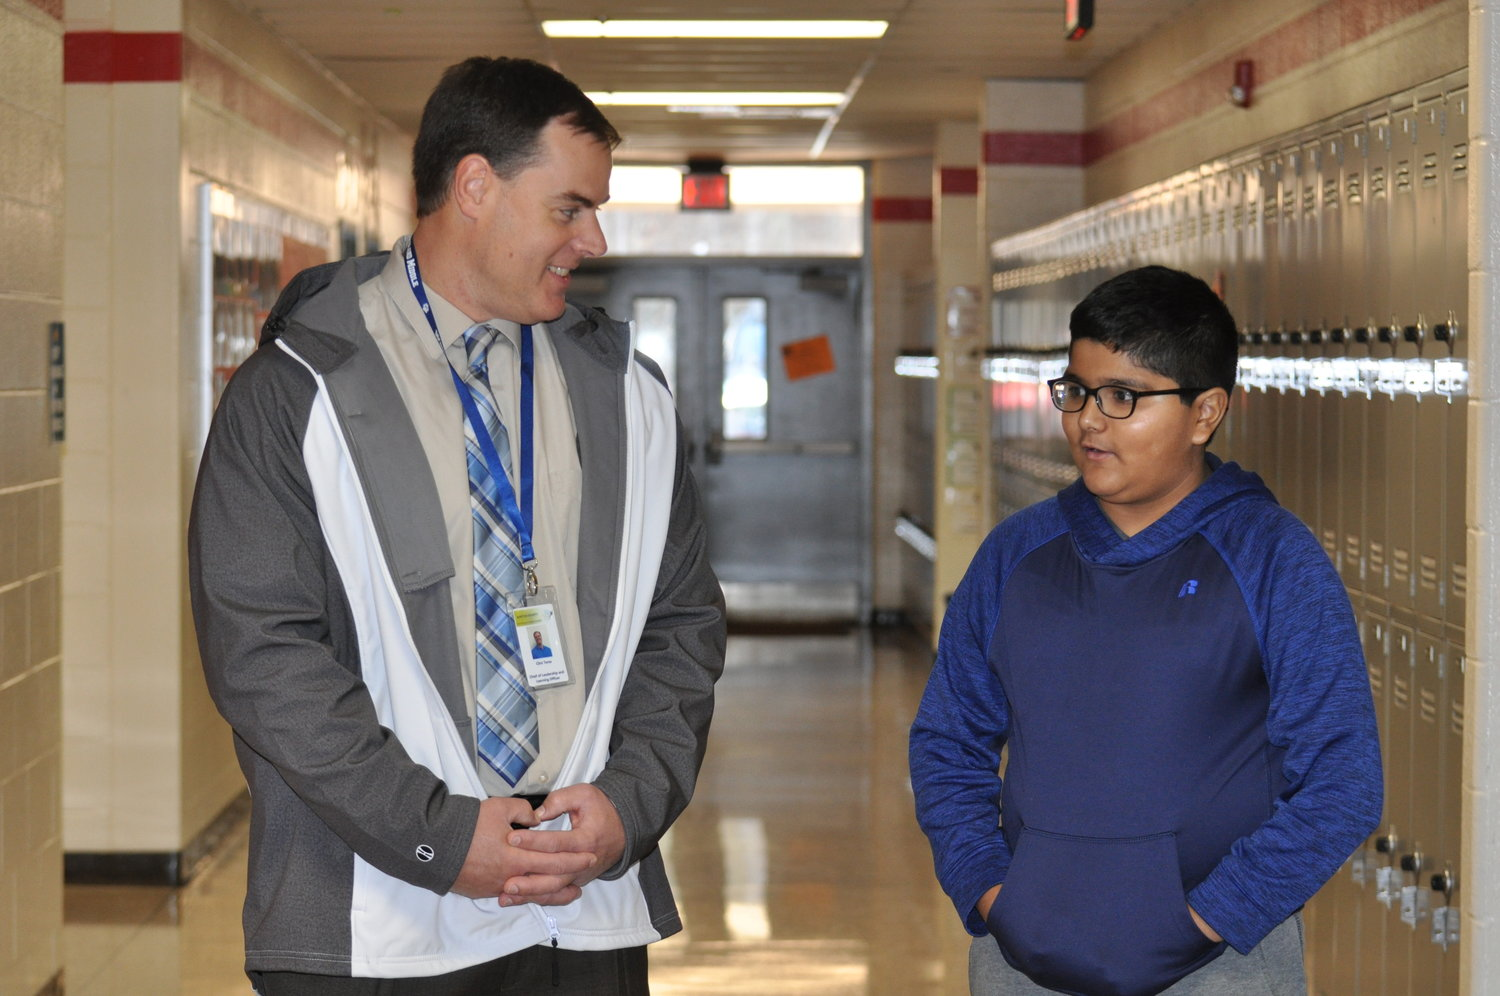 Chief Leadership and Learning Officer Clint Terza visited Red Top Middle sixth-grader Rudra Parmar Wednesday to congratulate him for his quick-thinking in summoning help when Ethan Hamrick was choking.